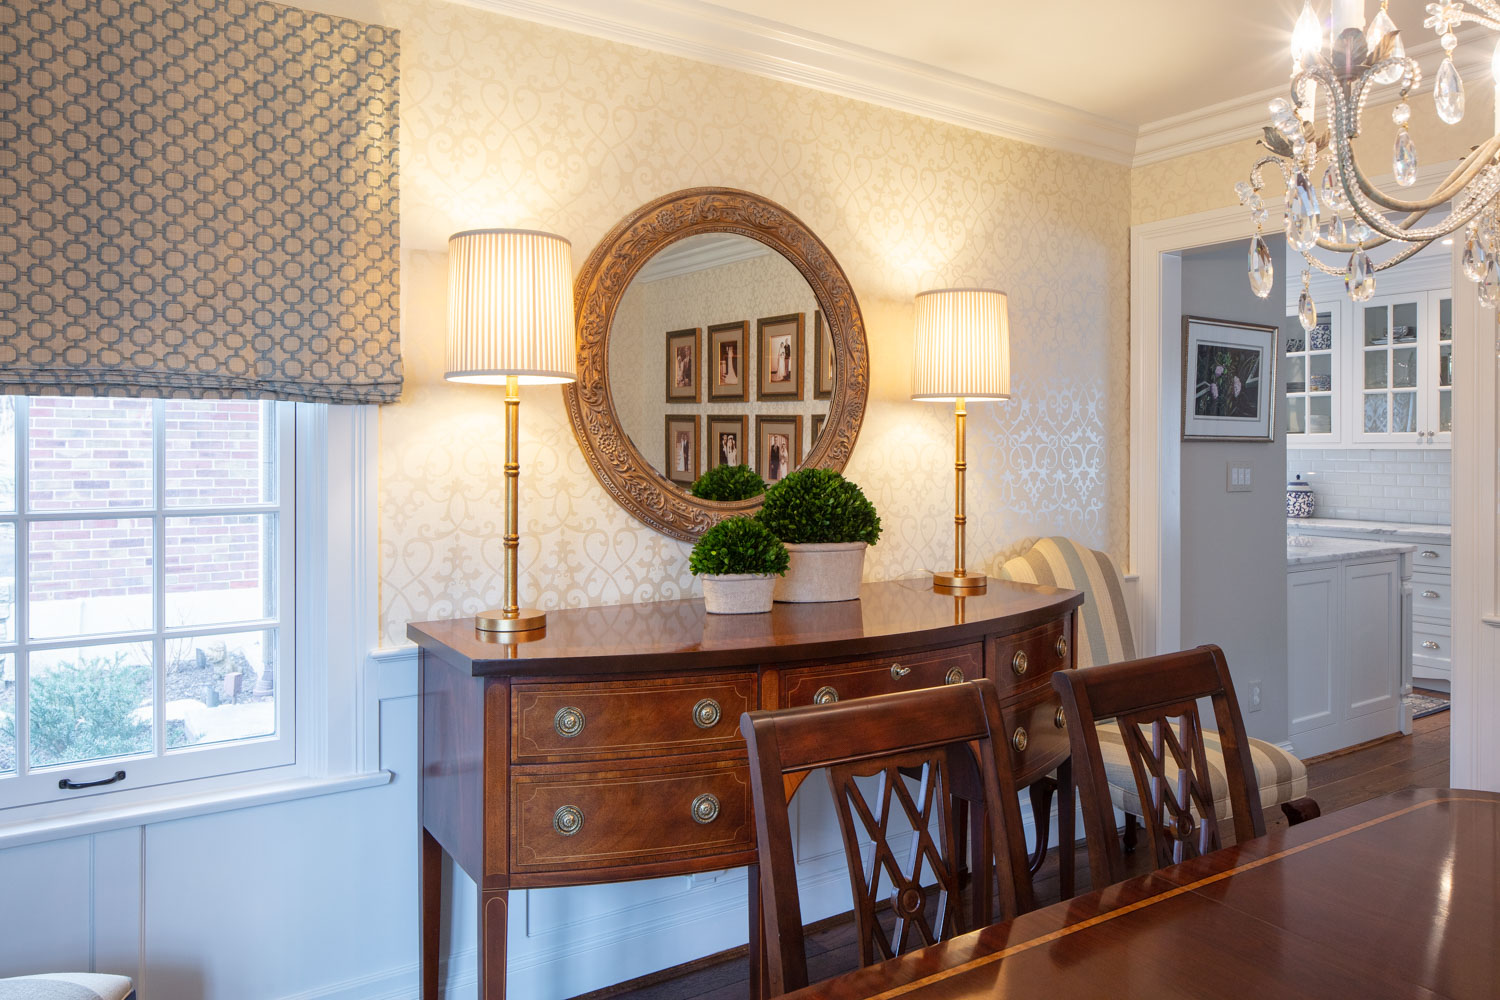 Dining room with wooden table, chairs, table lamp and mirror on the wall